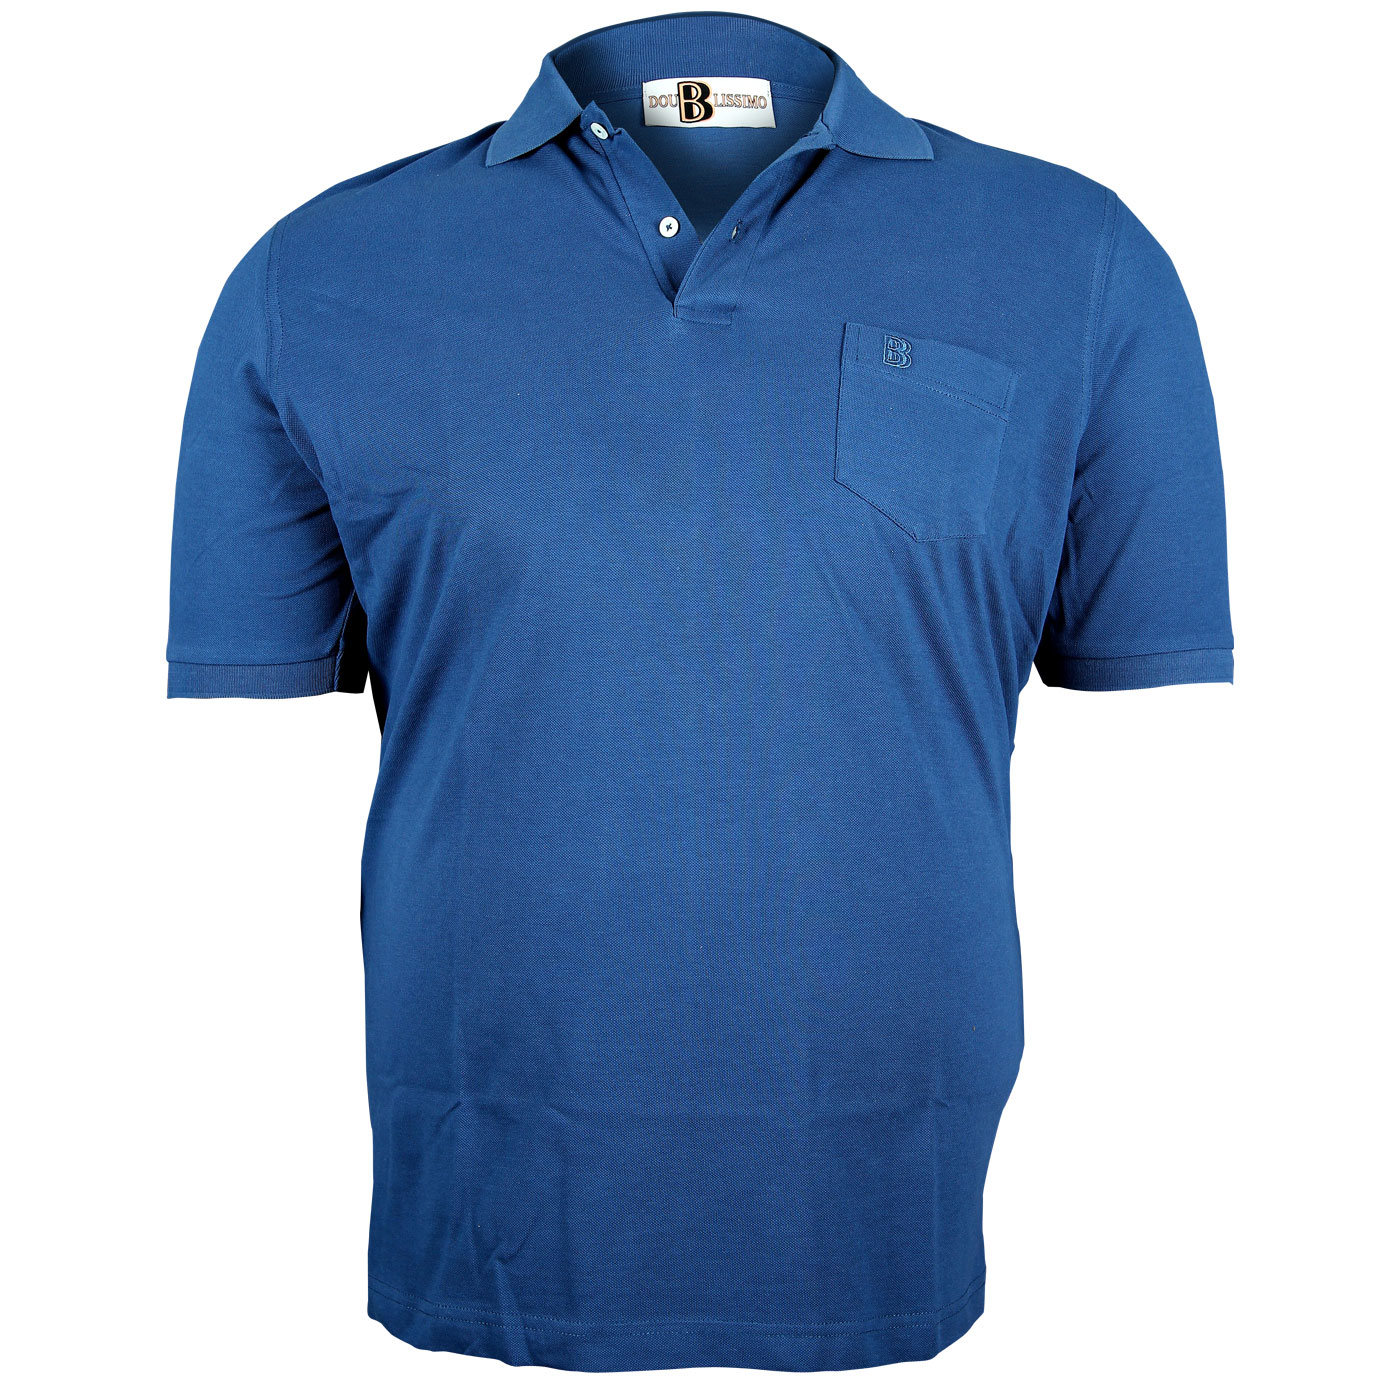 Man Polo Shirt large Sizes: 2XL to 6XL on Webmenshirts.com